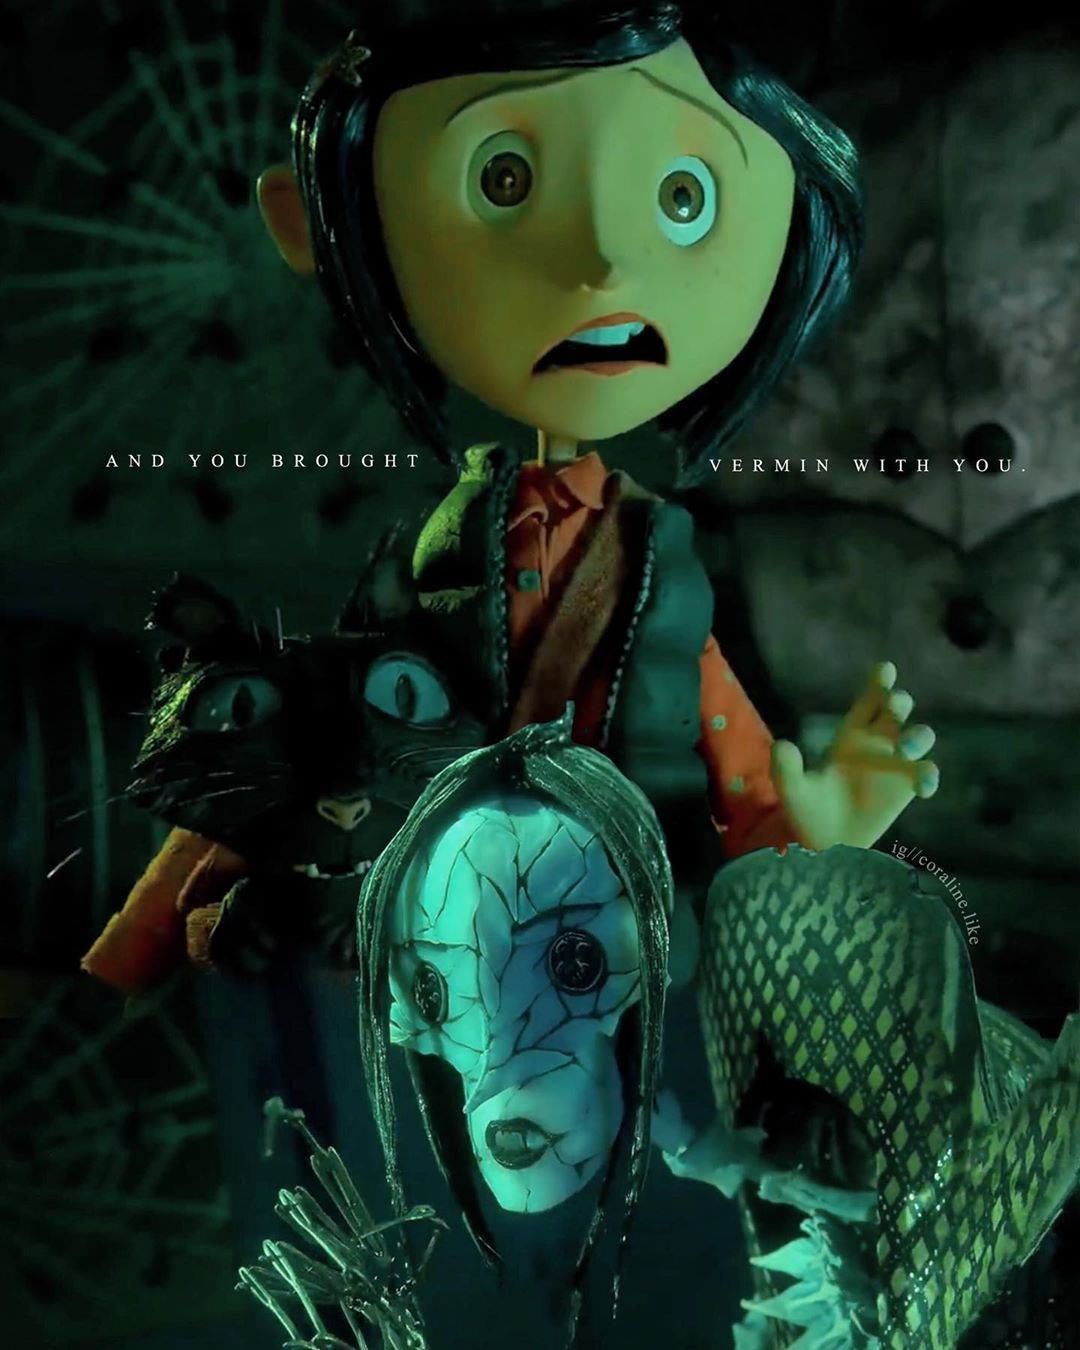 Matthew On Instagram 𝐃𝐎 𝐍𝐎𝐓 𝐑𝐄𝐏𝐎𝐒𝐓 Continue The Dialogue Tags Ignore Coraline Coralineeomundo In 2020 Coraline Aesthetic Coraline Coraline Jones